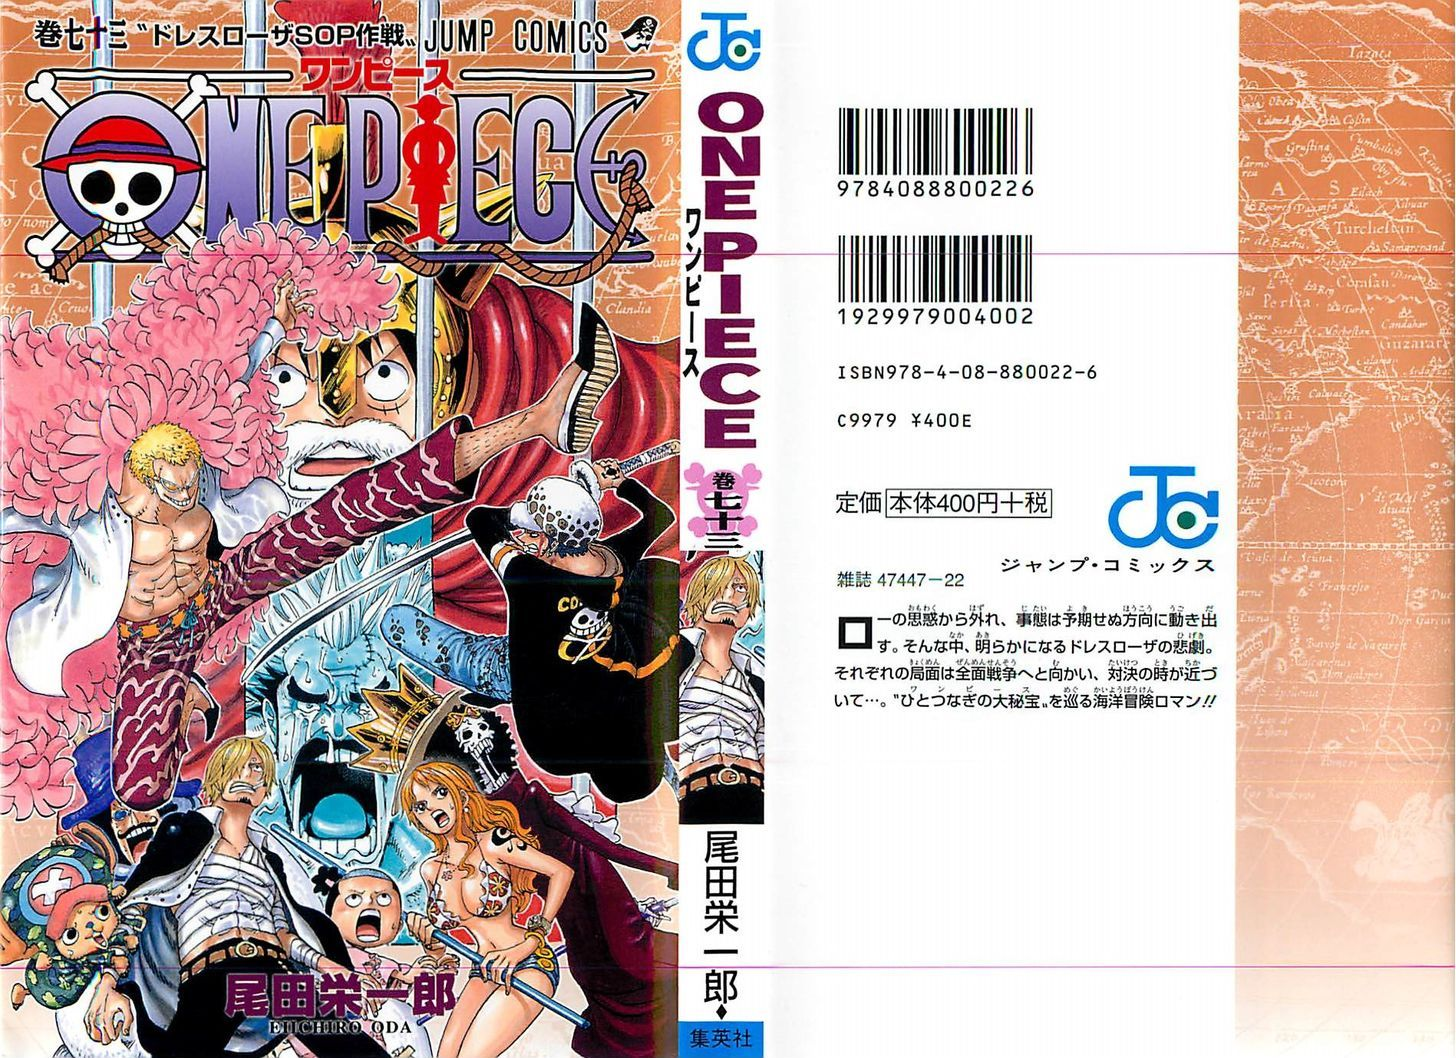 https://im.nineanime.com/comics/pic9/32/96/3071/OnePiece7220440.jpg Page 1